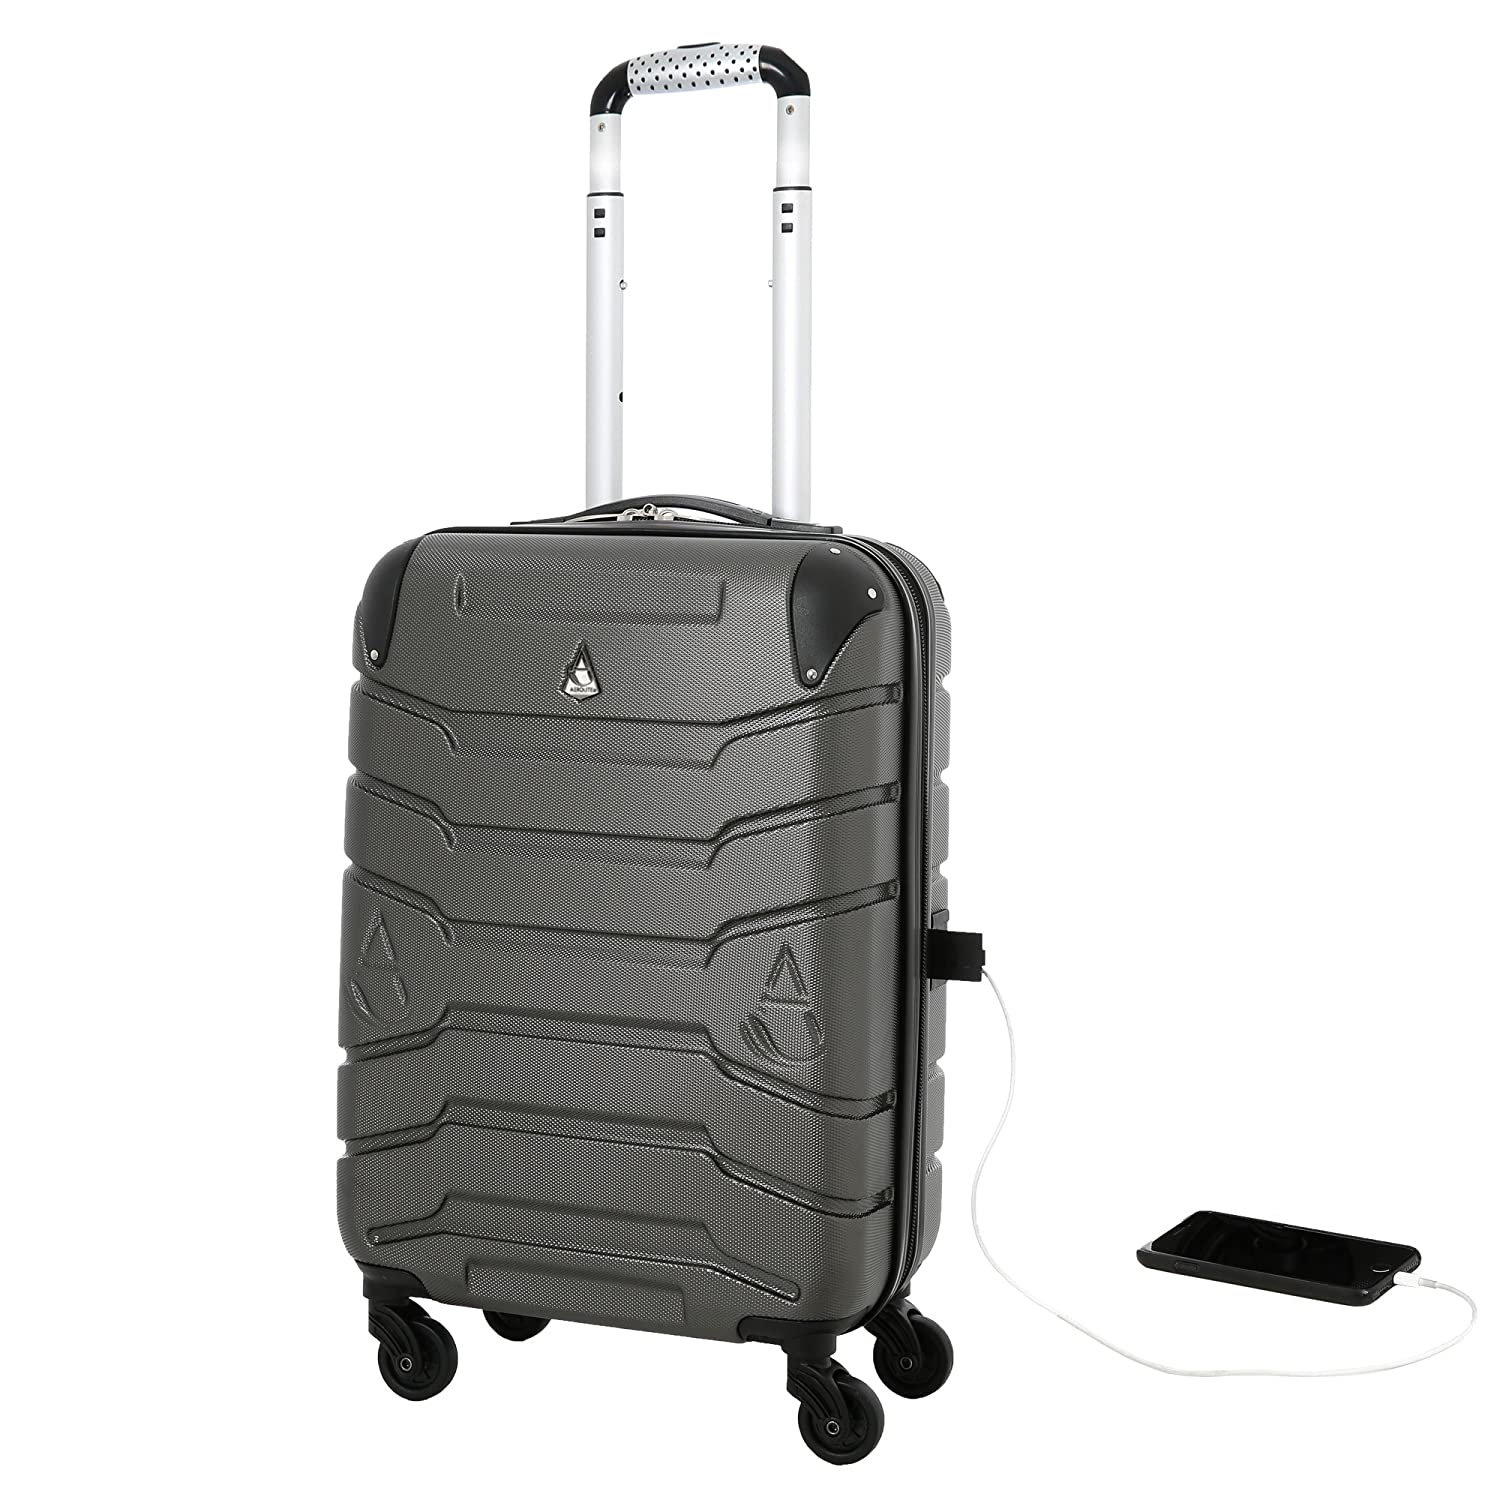 Aerolite Smart Suitcase with USB Phone Charger Port, ABS Hard Shell 4 Wheel  Carry On Hand Cabin Luggage, Approved for Ryanair, easyJet, British